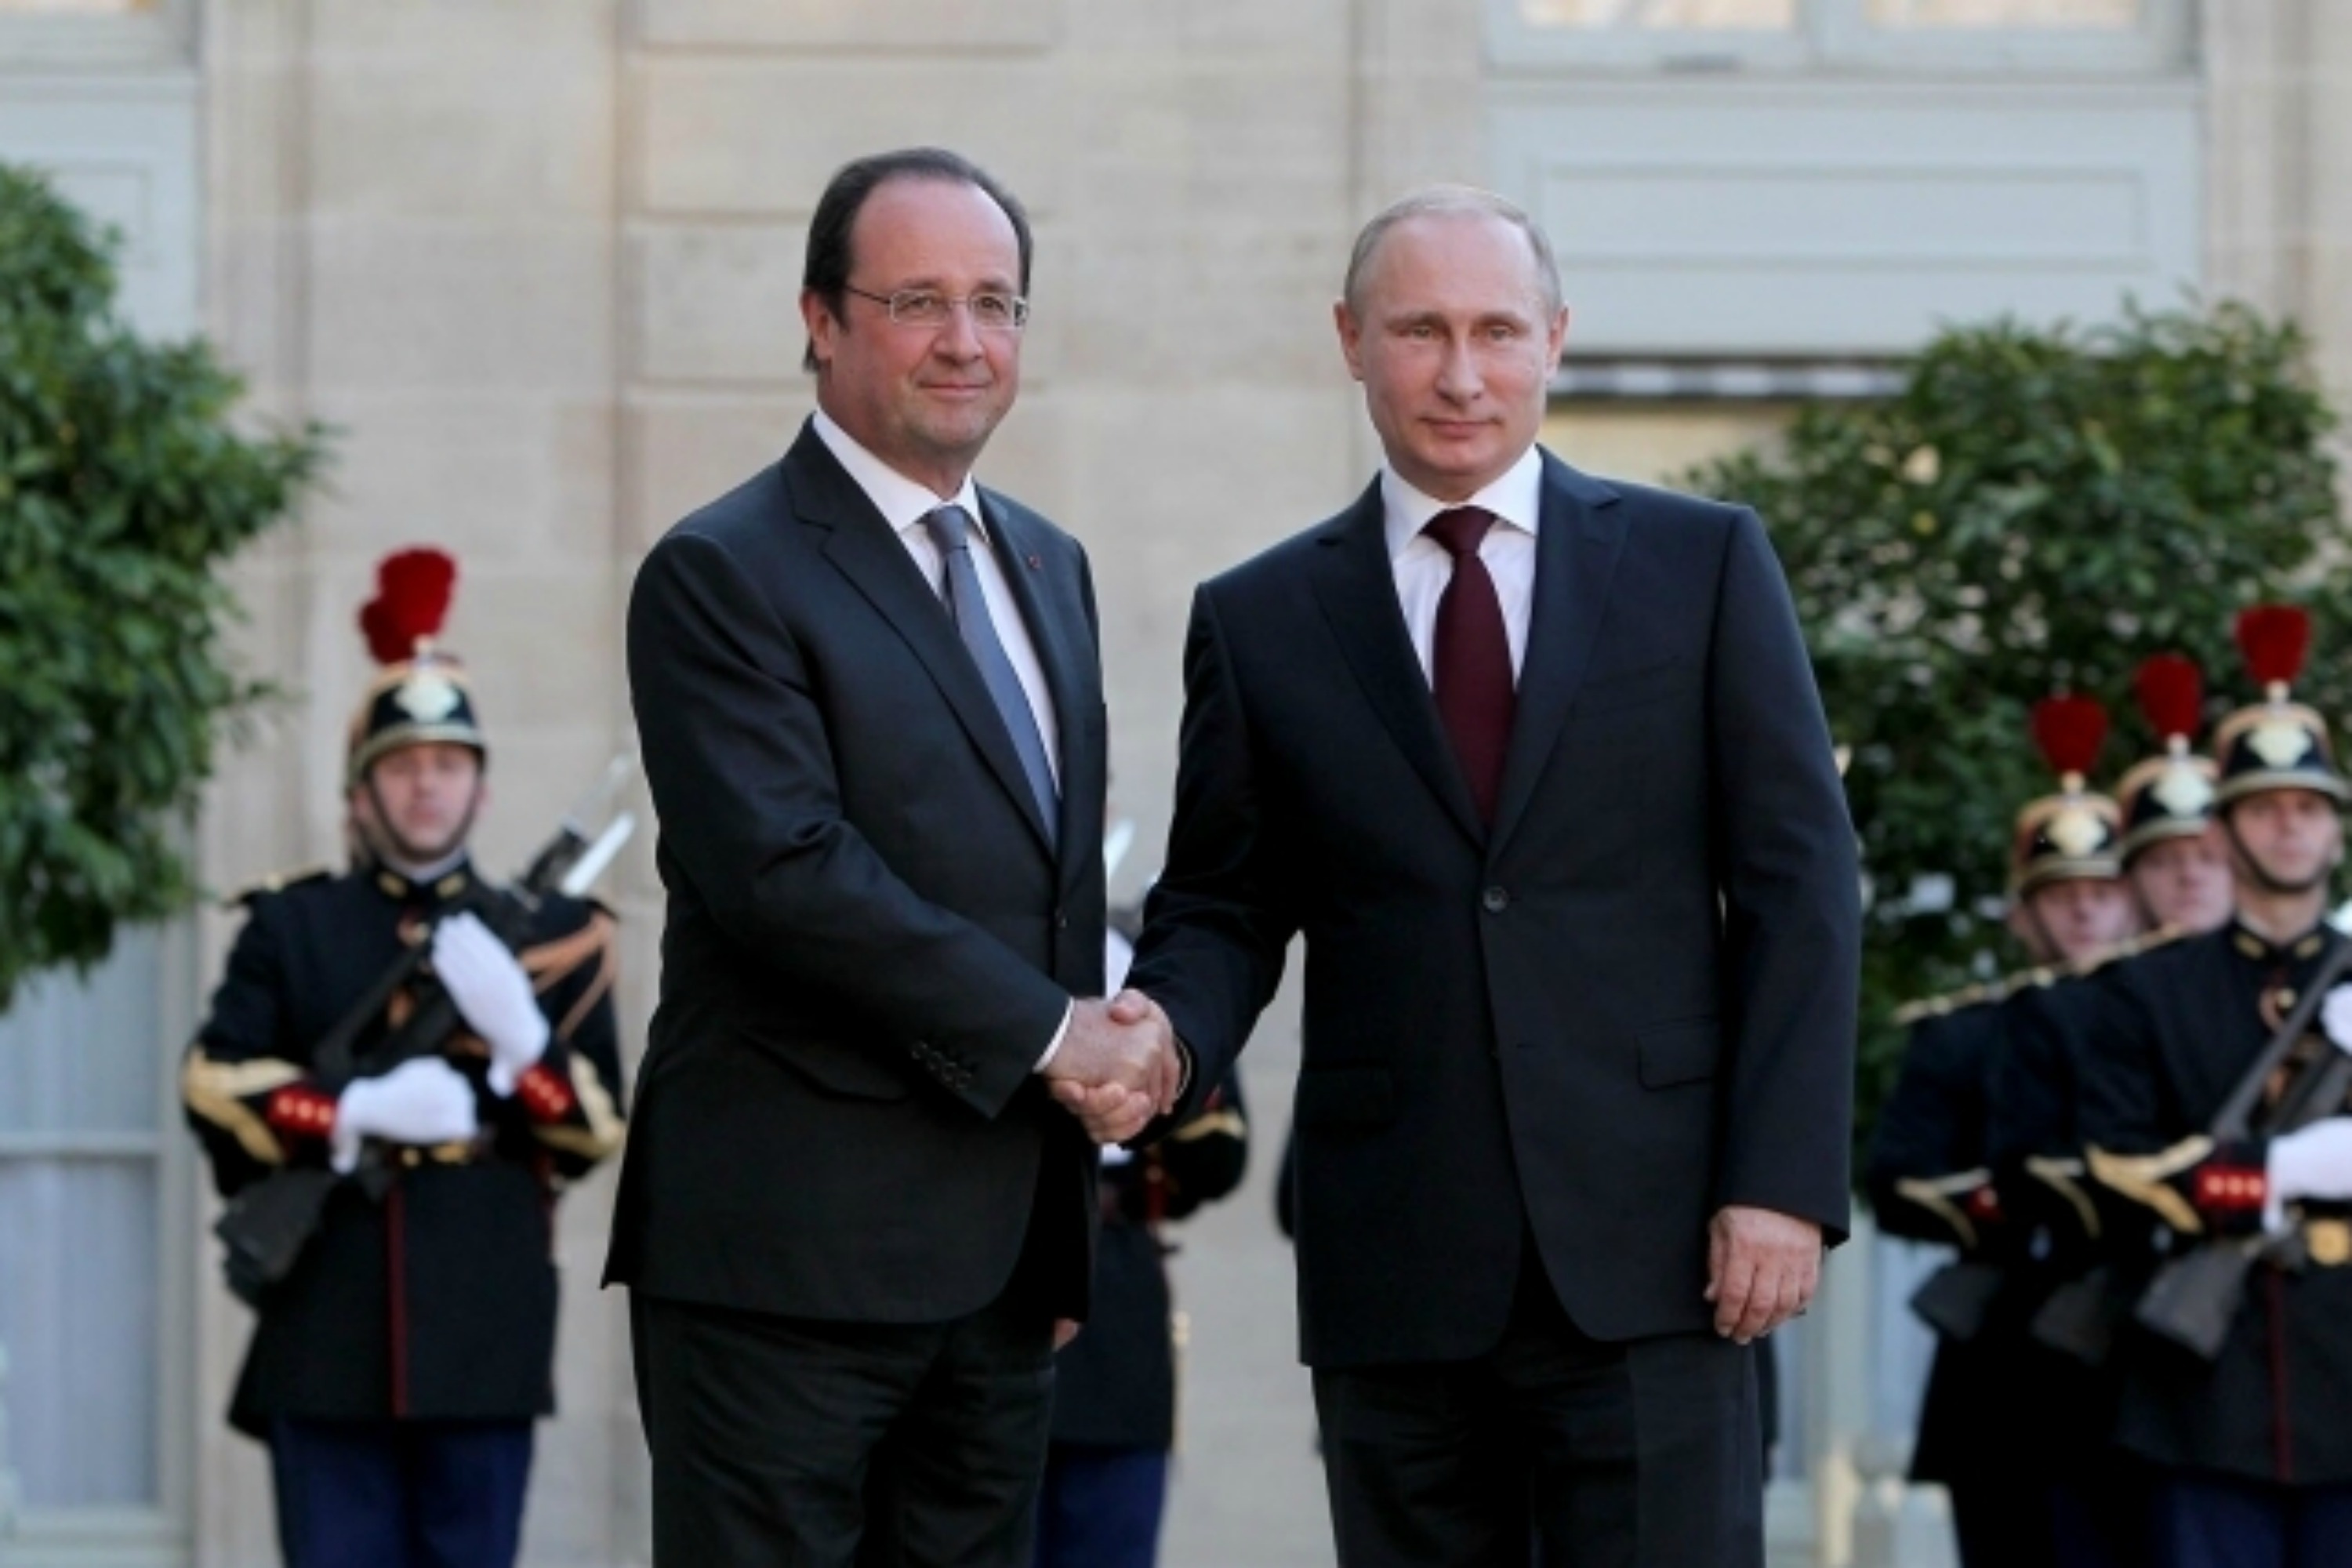 François Hollande and Vladimir Putin at Elysée palace in Paris [French Presidency]